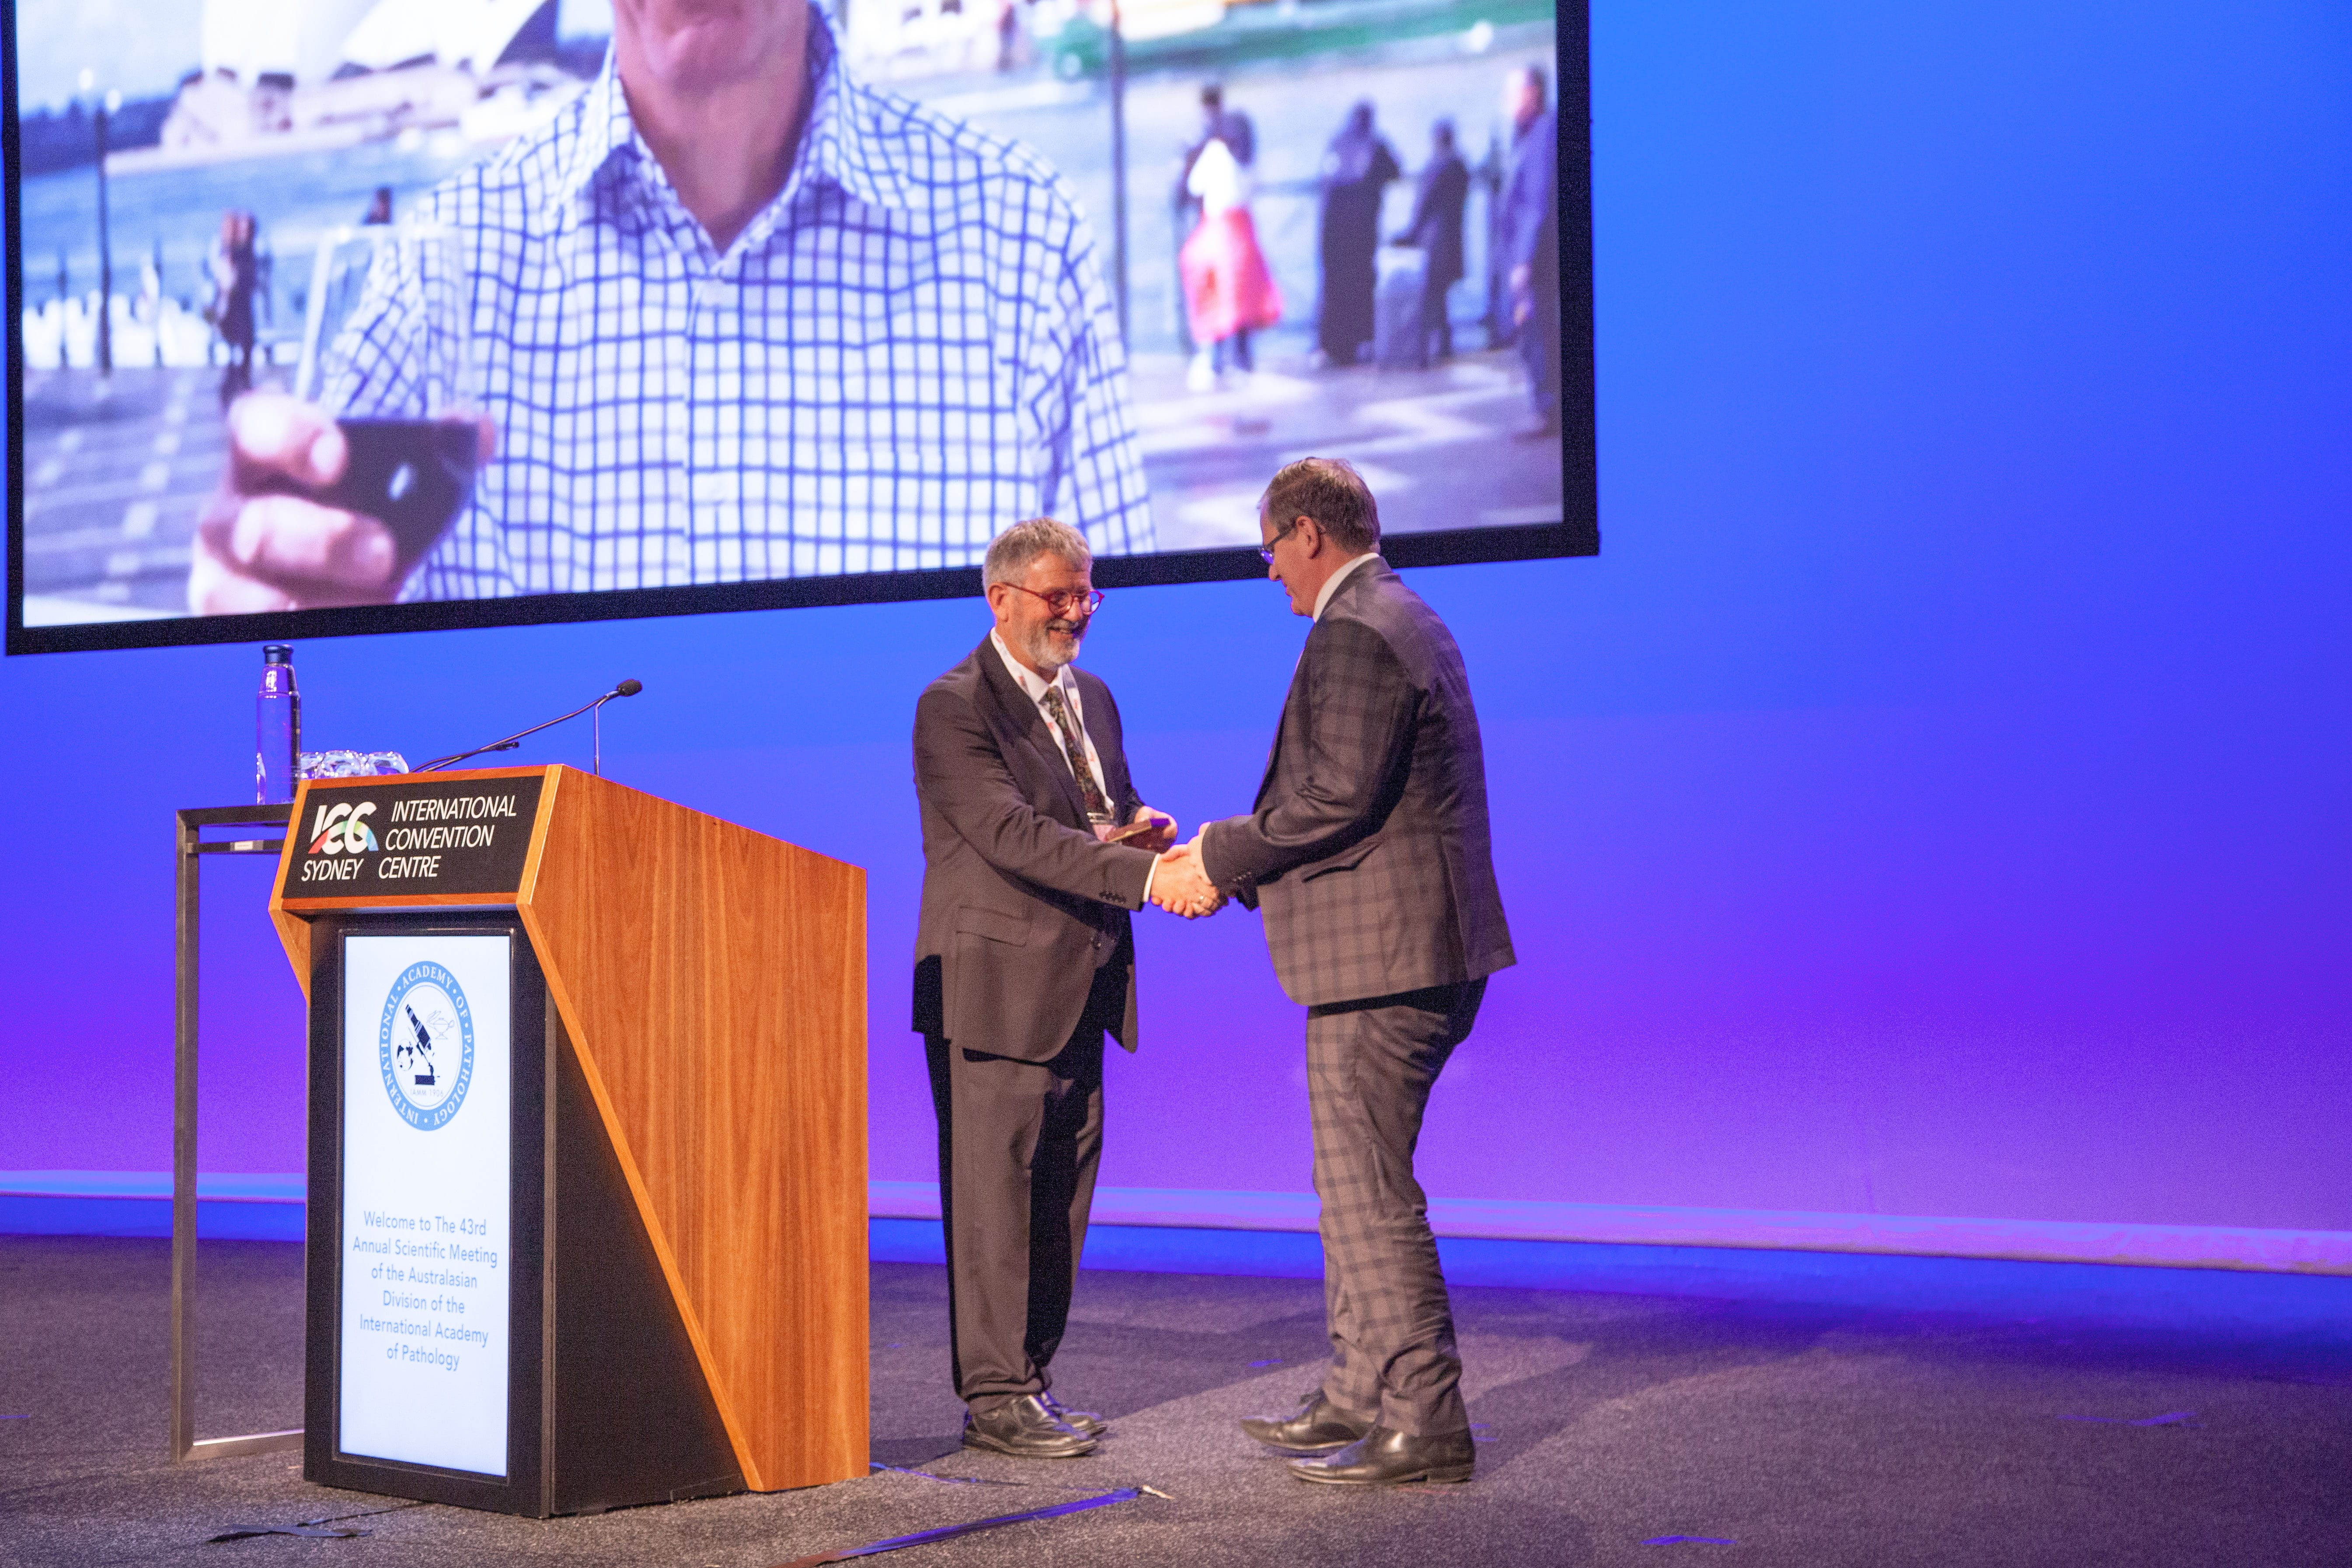 Anthony Gill accepting the Distinguished Pathologist Award on behalf of Robert Eckstein